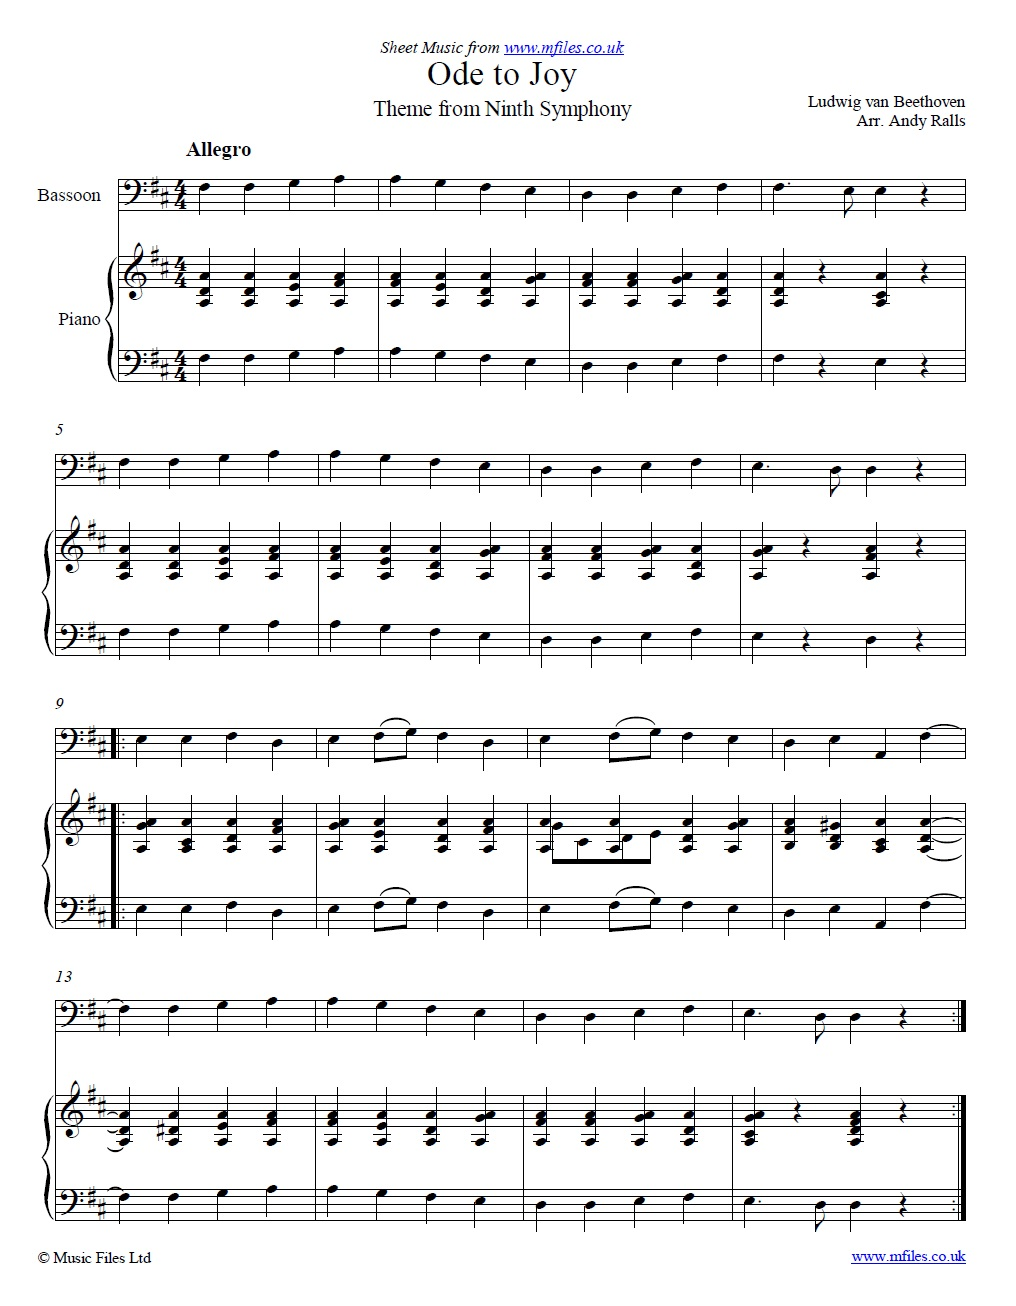 Ludwig van Beethoven: Ode of Joy theme (from 4th movement of